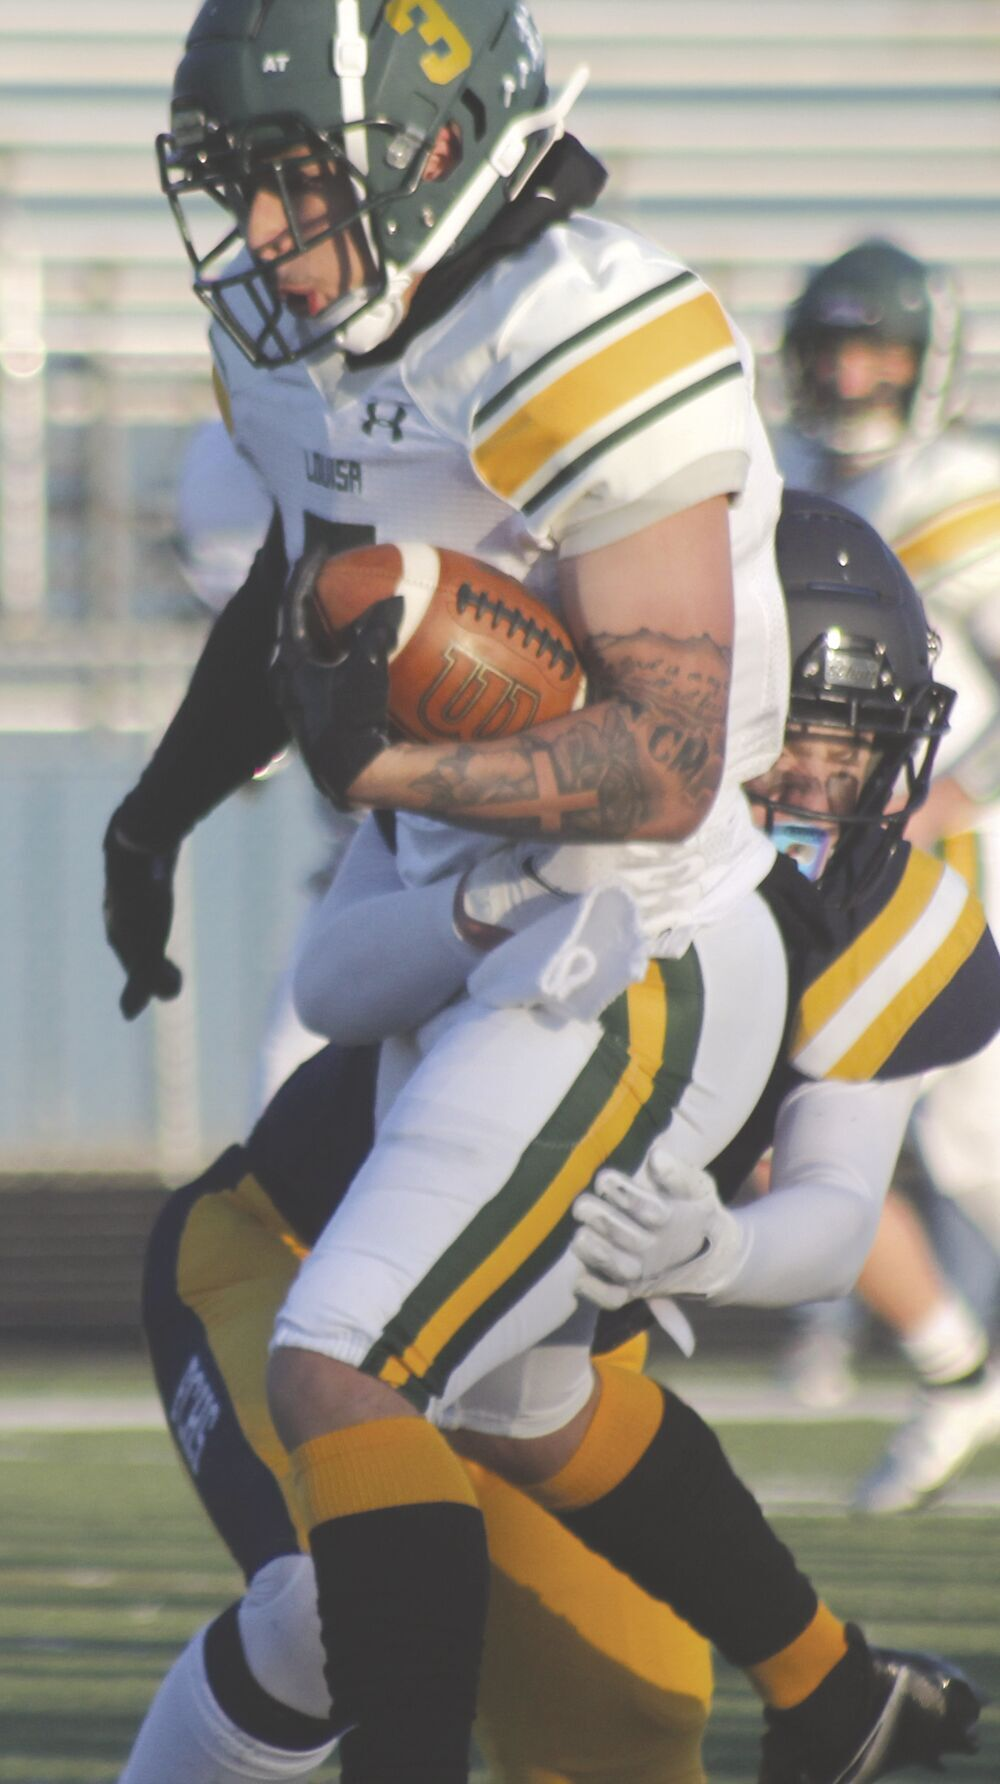 Early Louisa scores lead to big win over Fluvanna